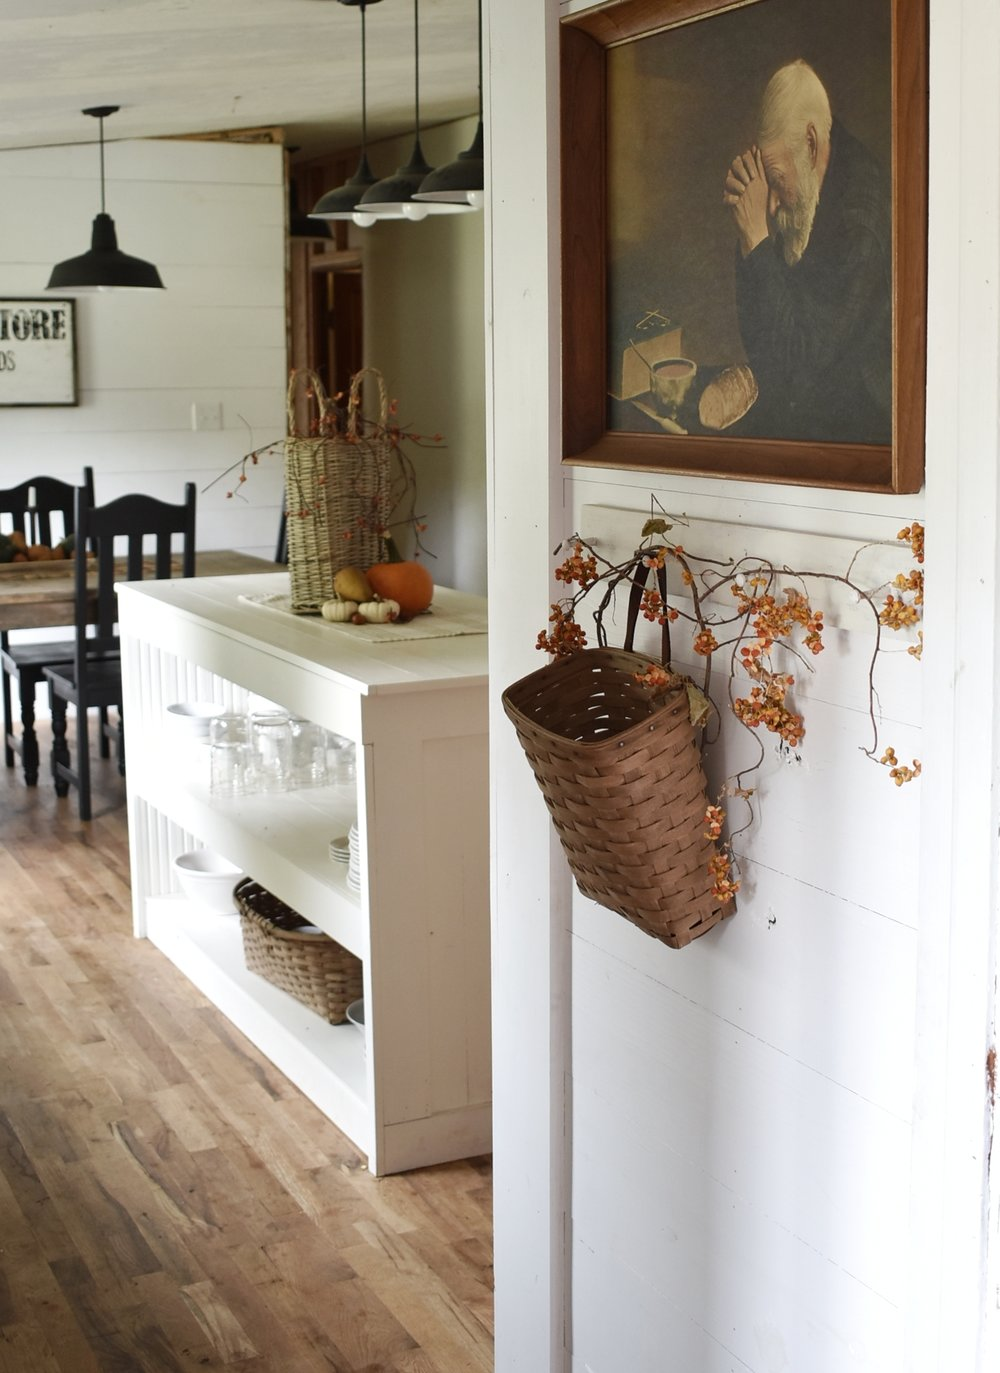 A Simple Fall Farmhouse Tour for Autumn of our Dining Room and Kitchen